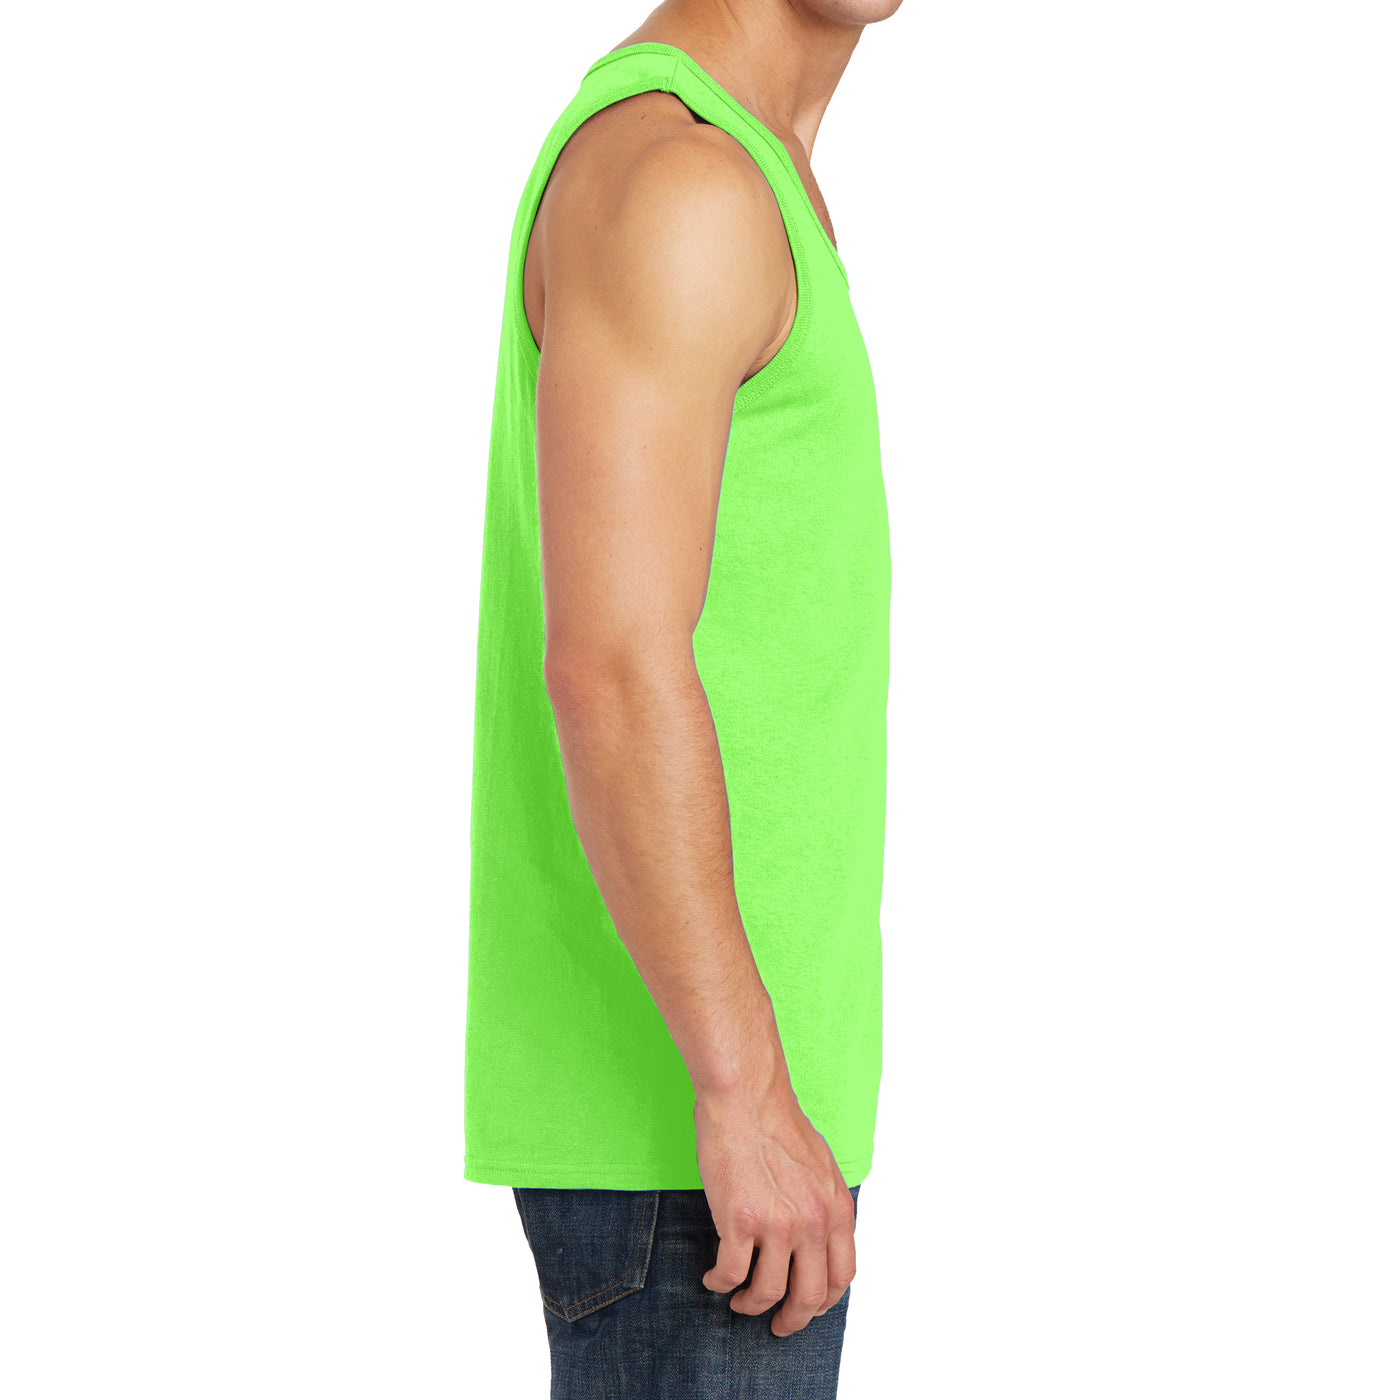 Men's Core Cotton Tank Top - Neon Green - Side